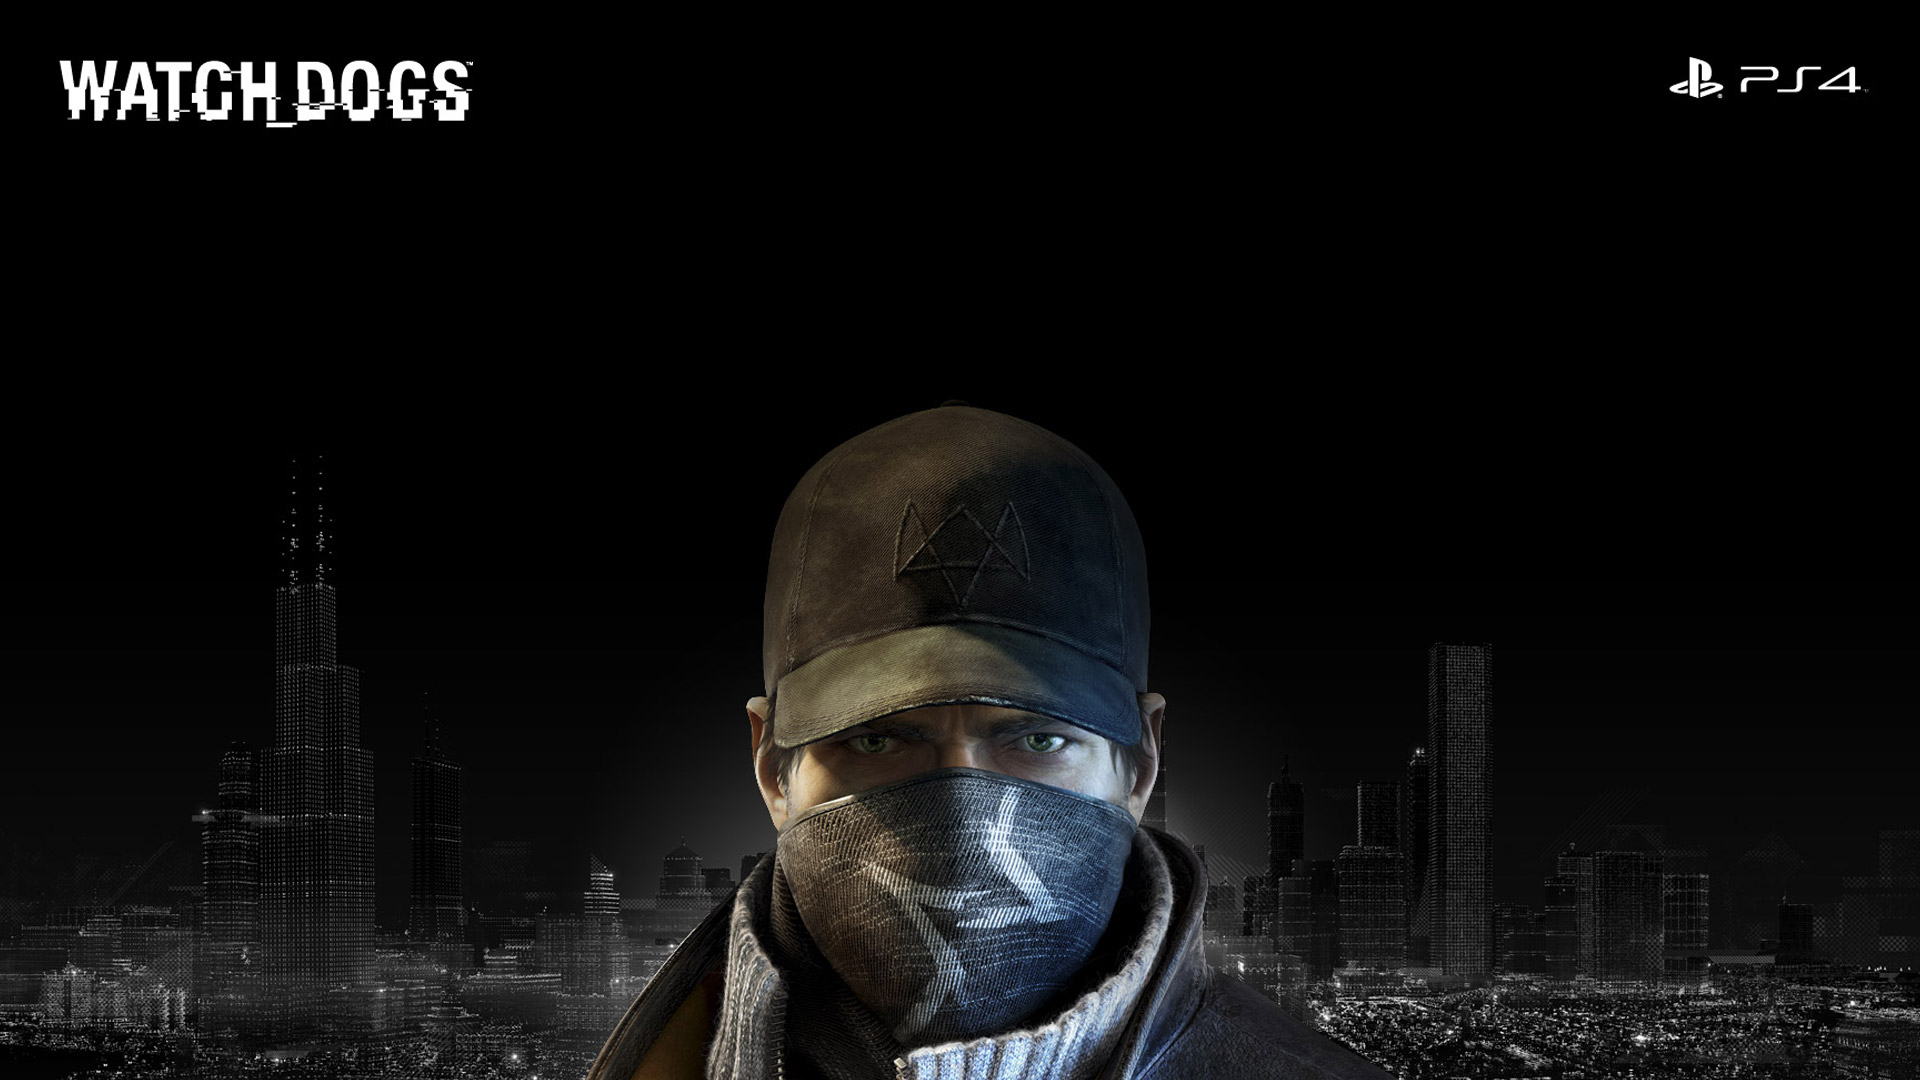 Watch Dogs wallpaper 11